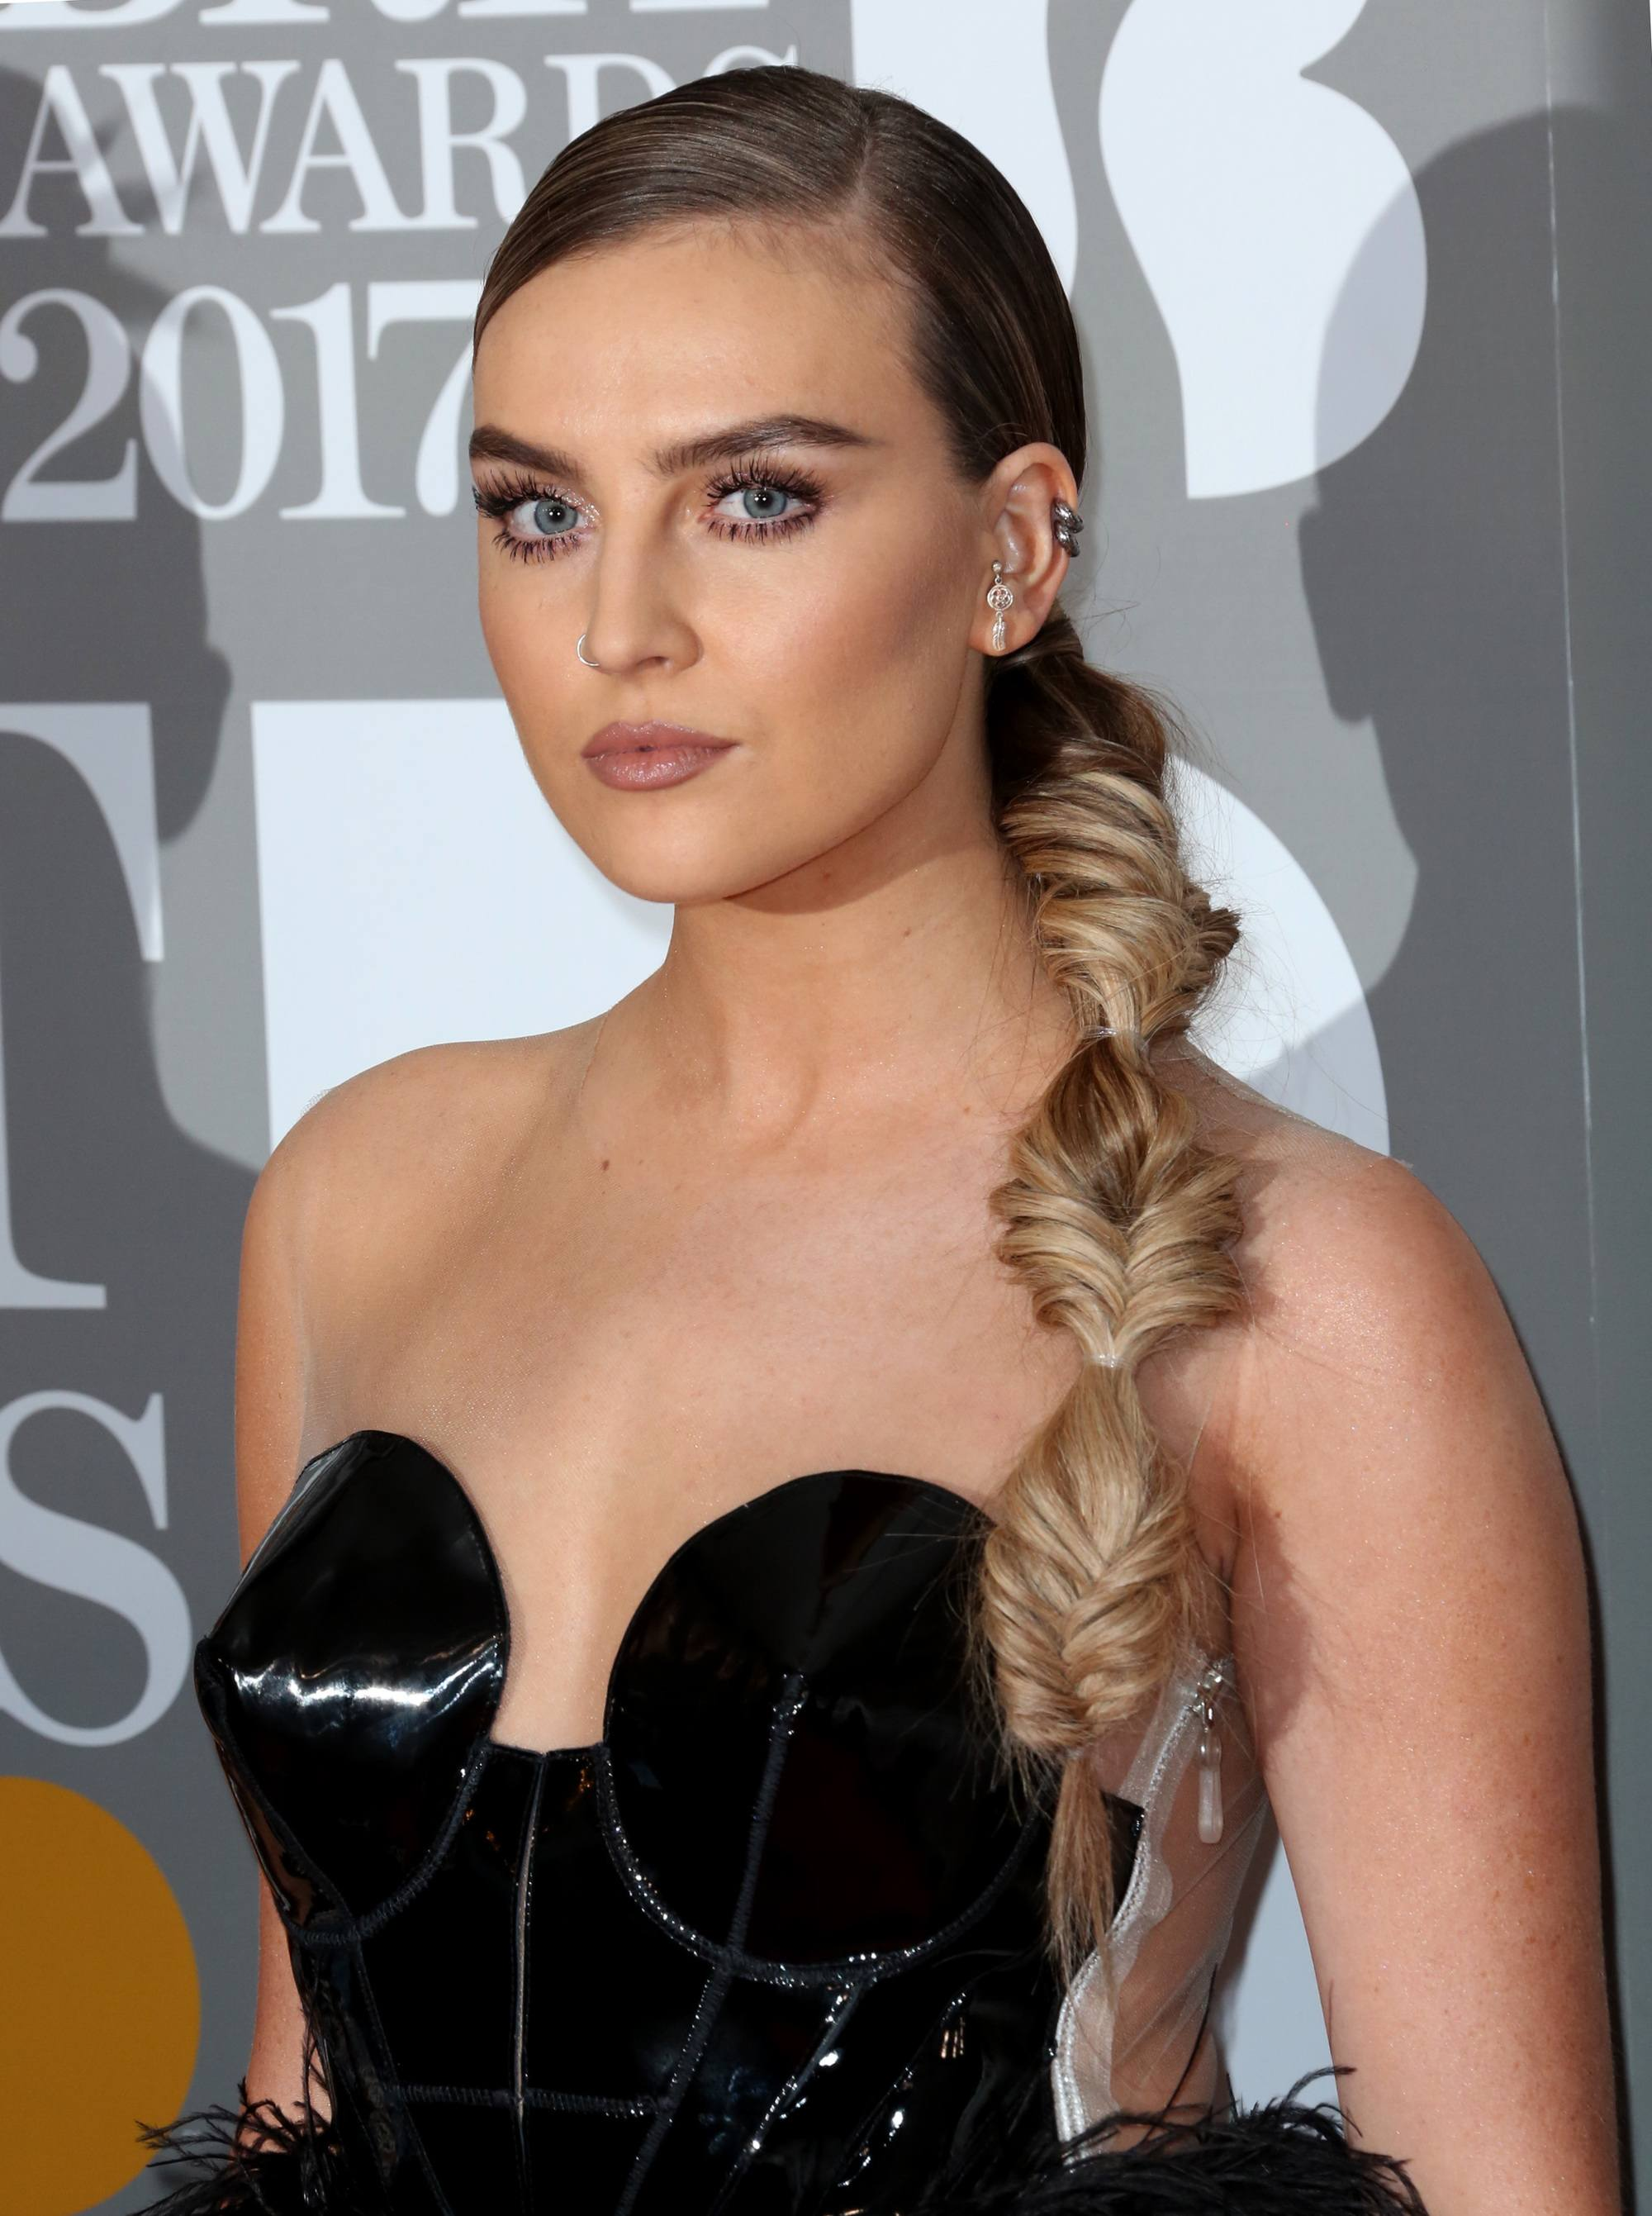 little mix star perrie edwards on the red carpet with her hair in fishtail bubble braids